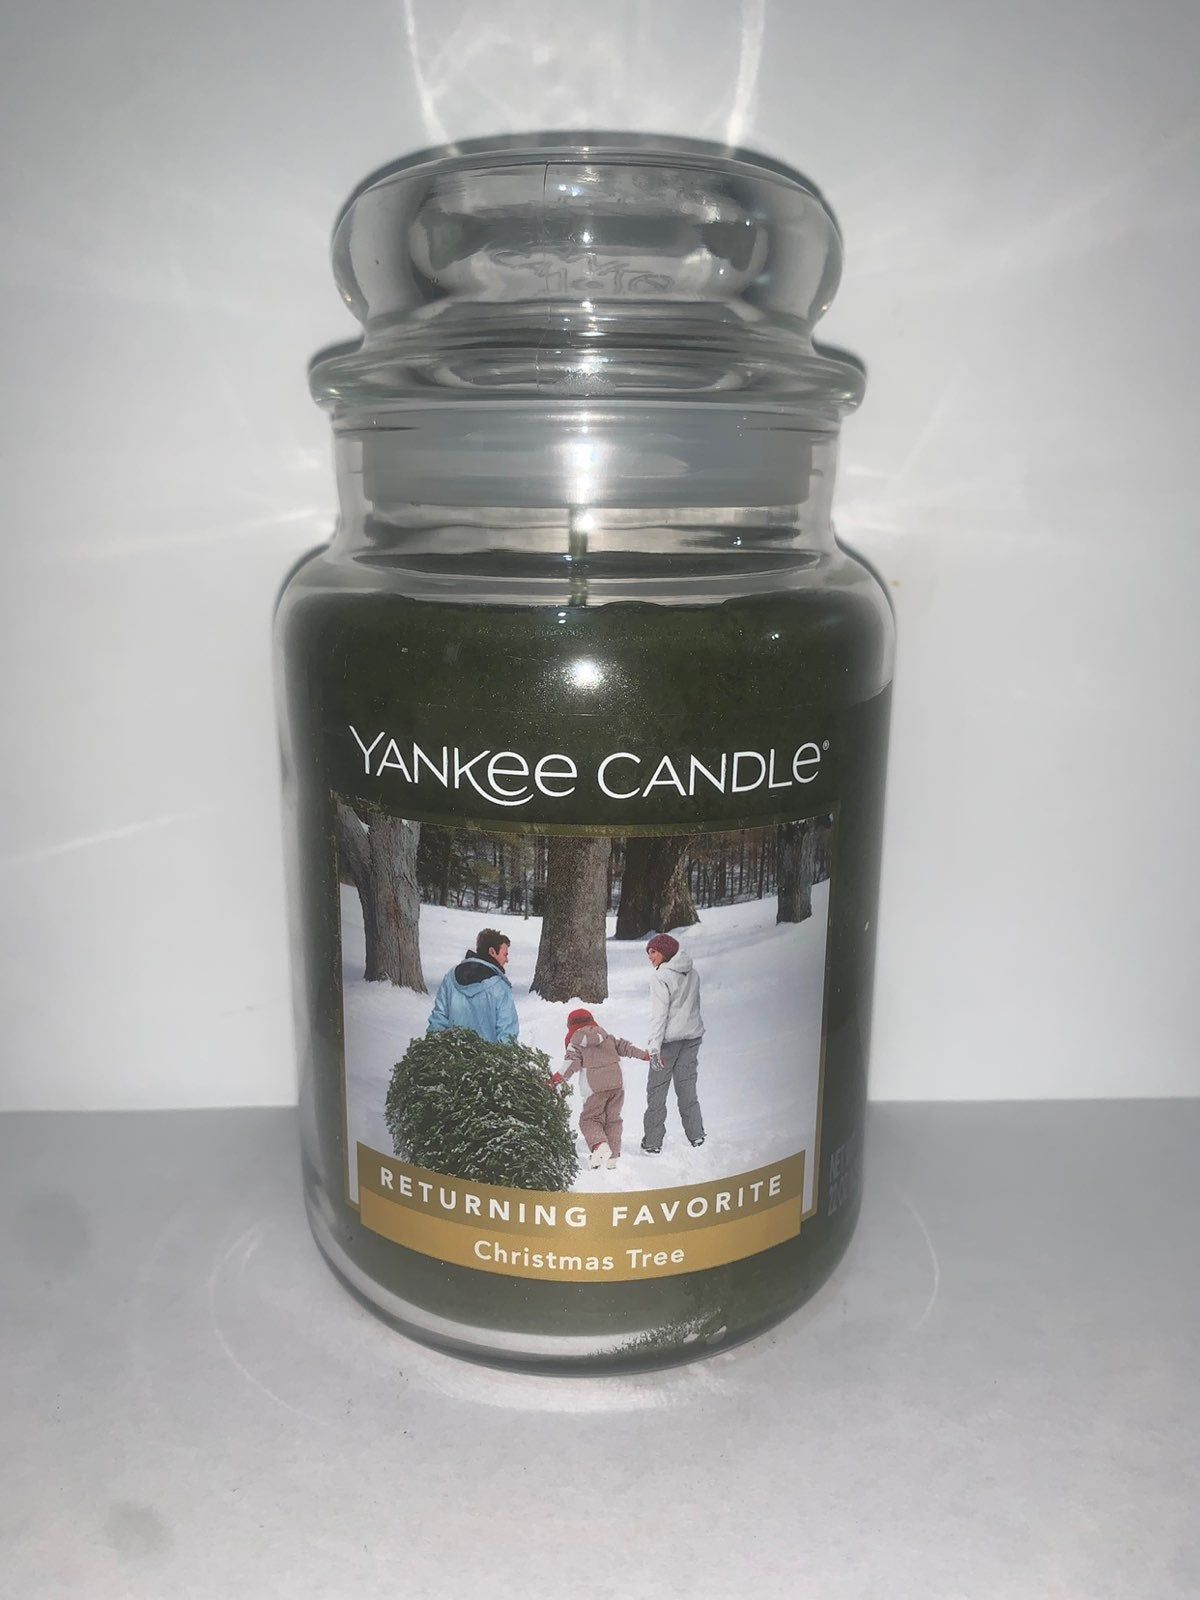 Yankee Candle Large Jar Christmas Tree 22oz Burn Time 110 150 Hours I Combine Shipping And Bundle Items I Also Yankee Candle Christmas Yankee Candle Candles